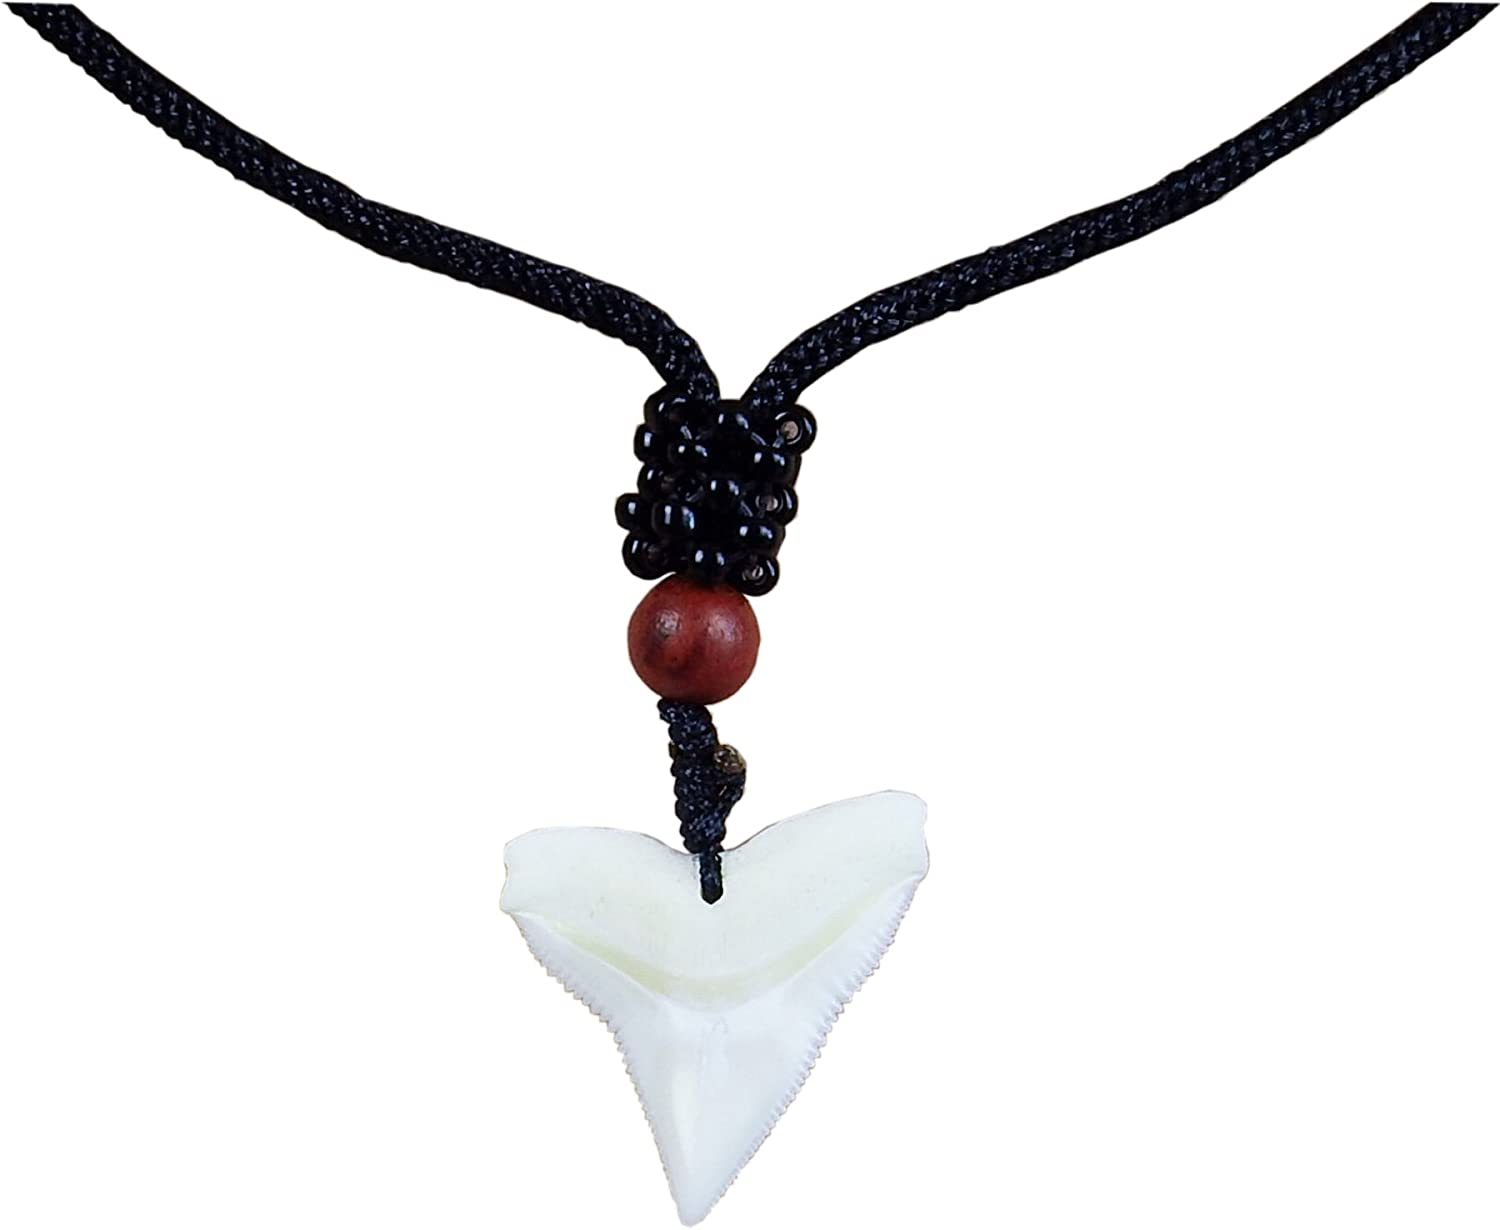 Real Shark Tooth Teeth Pendant Charm Choker Necklace with Black Cord